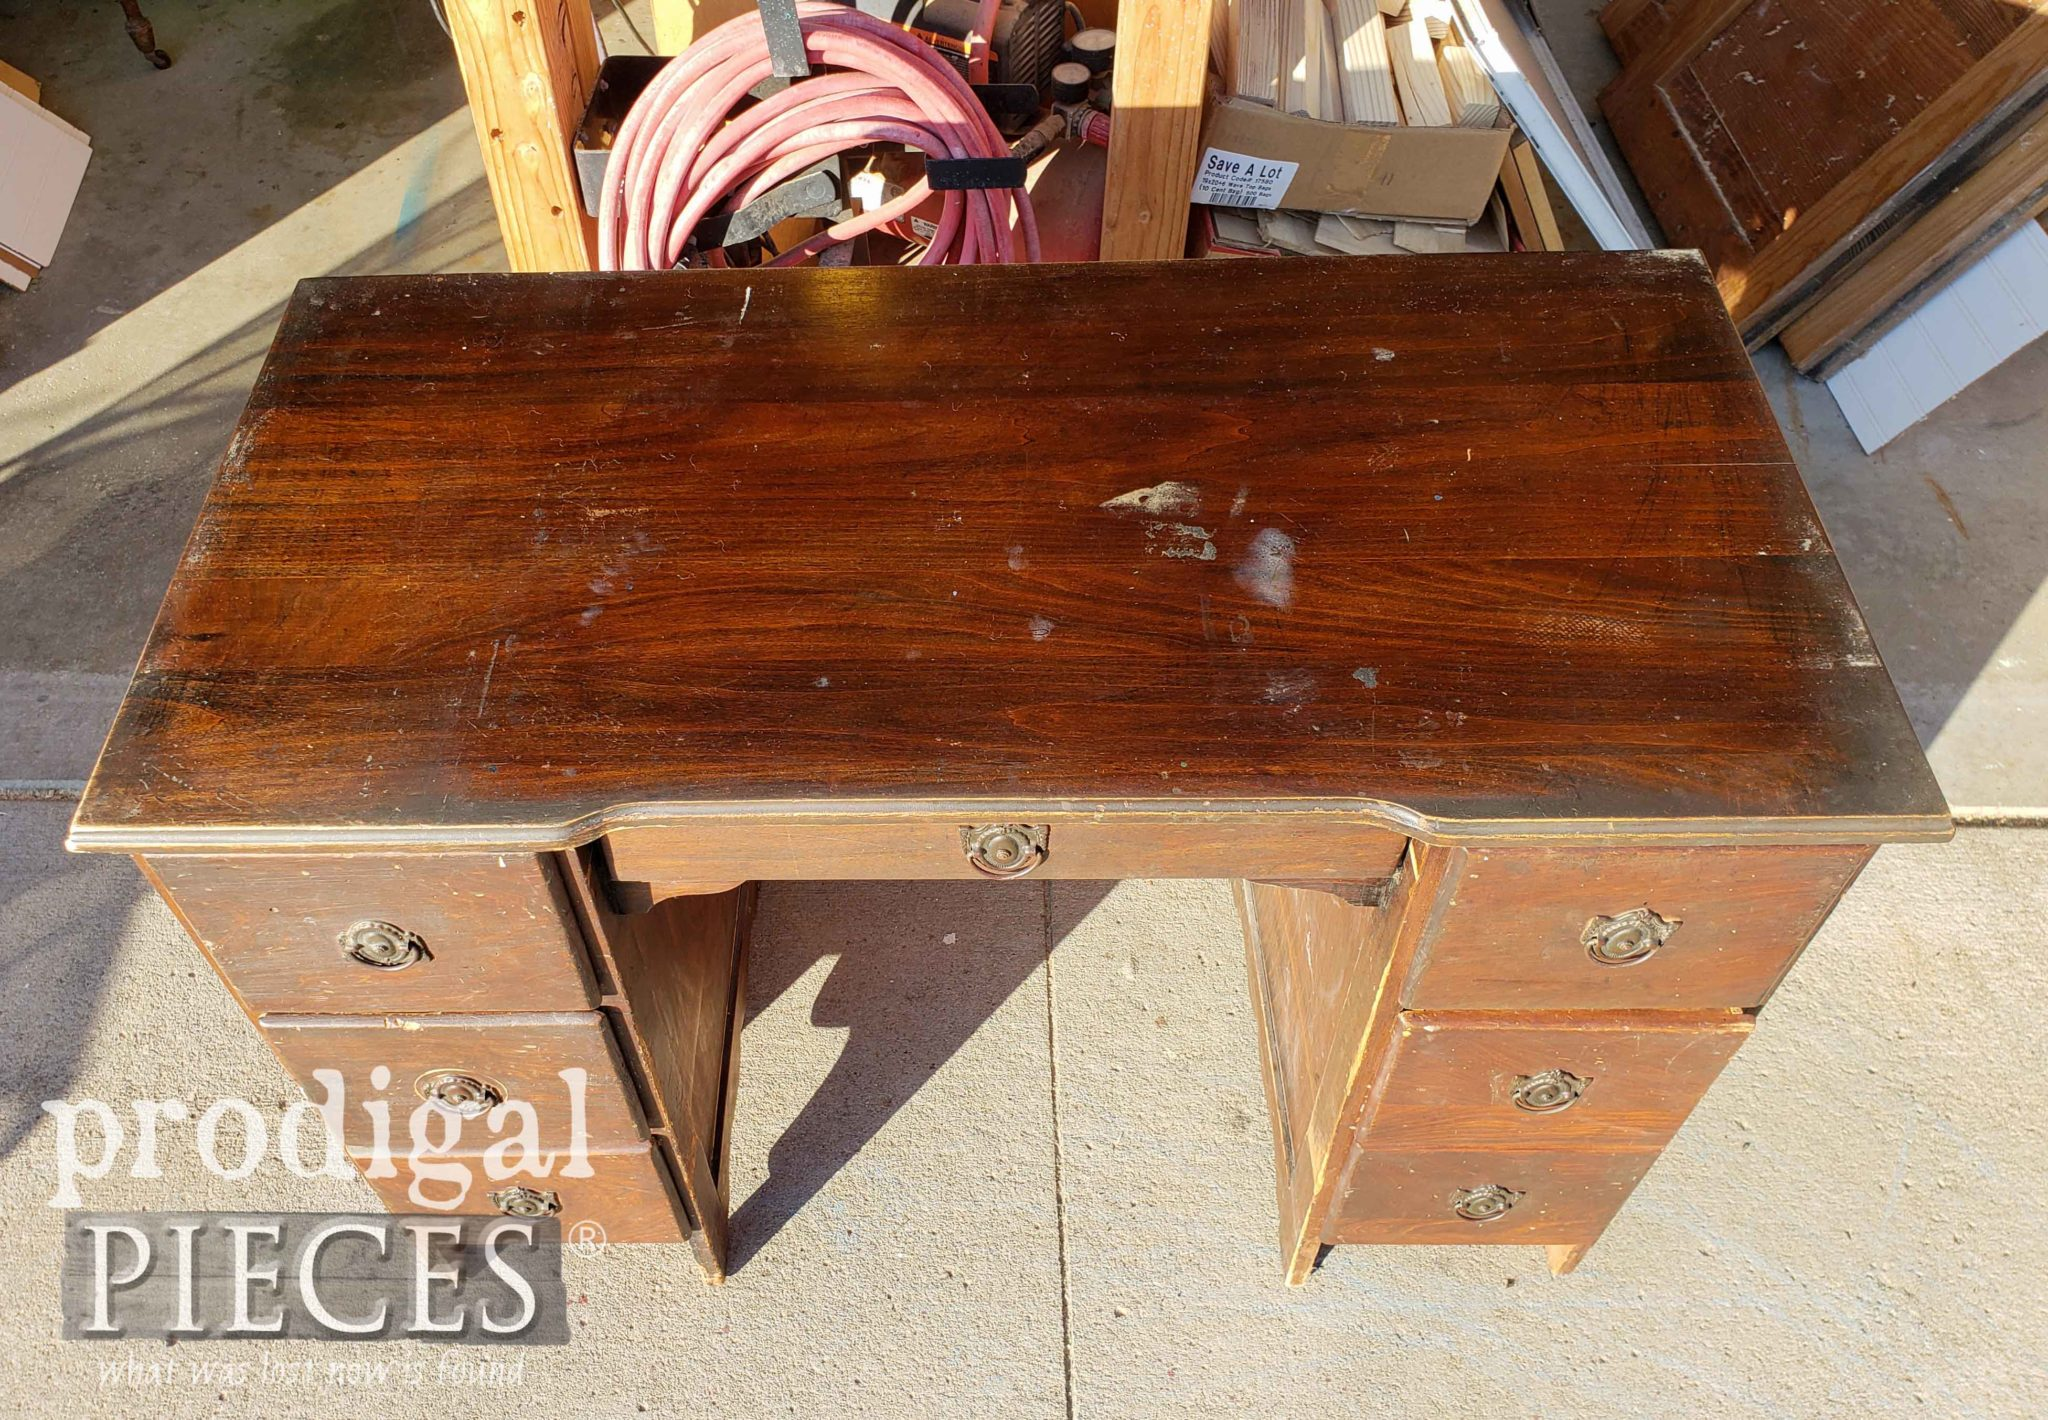 Damaged Antique Desk Top | prodigalpieces.com